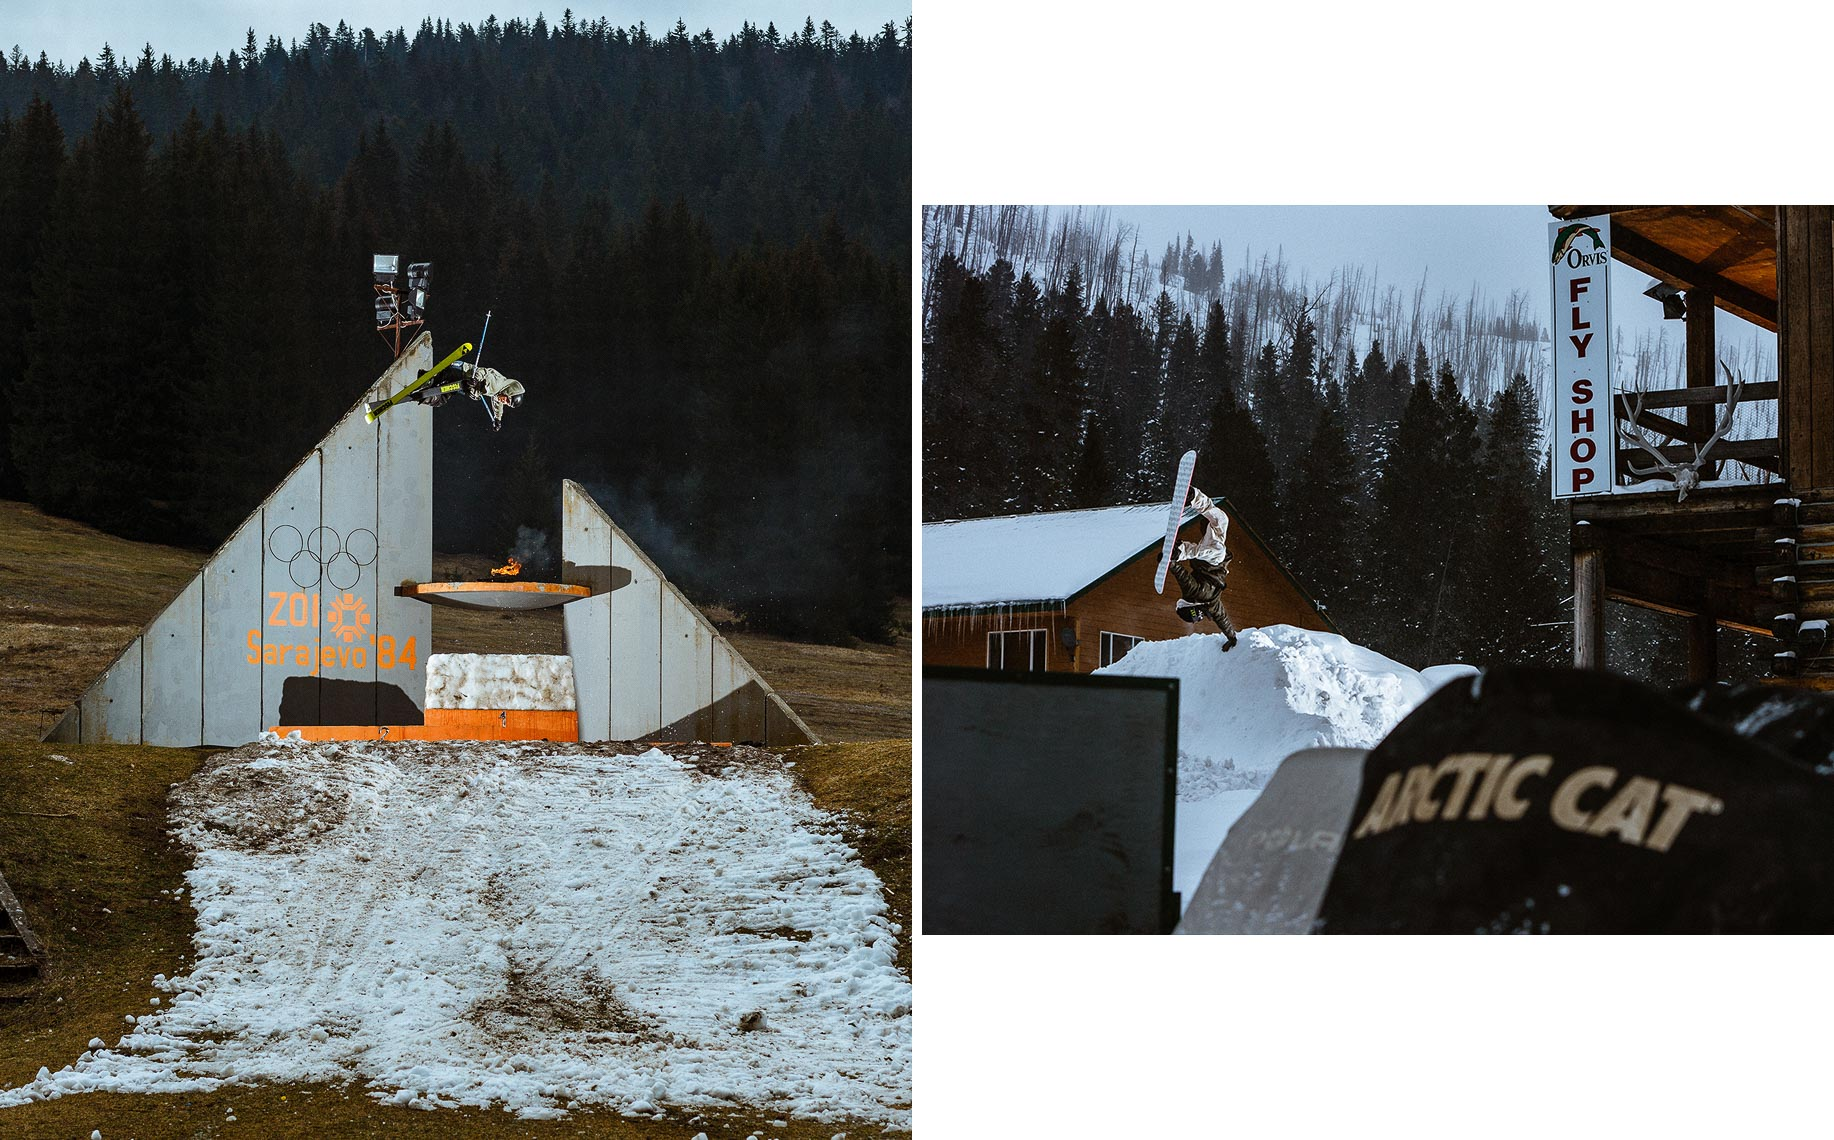 (L) Joss Christensen. Sarajevo, Bosnia & Herzegovina. (R) Scott Blum. Cooke City, MT.